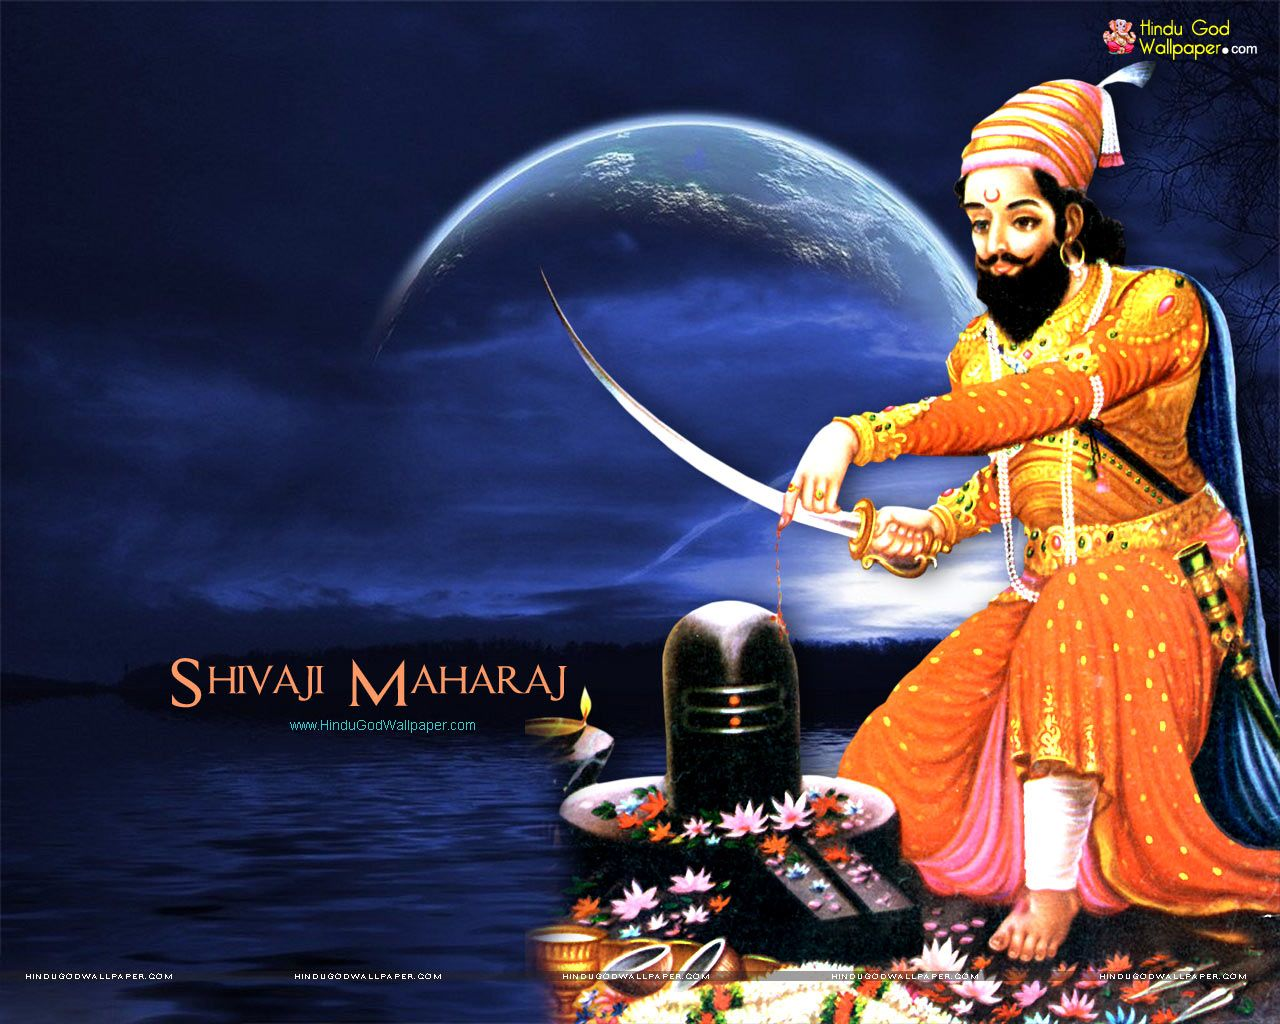 Shivaji Maharaj Photo Free Download: New Shivaji Maharaj Wallpaper Free Download